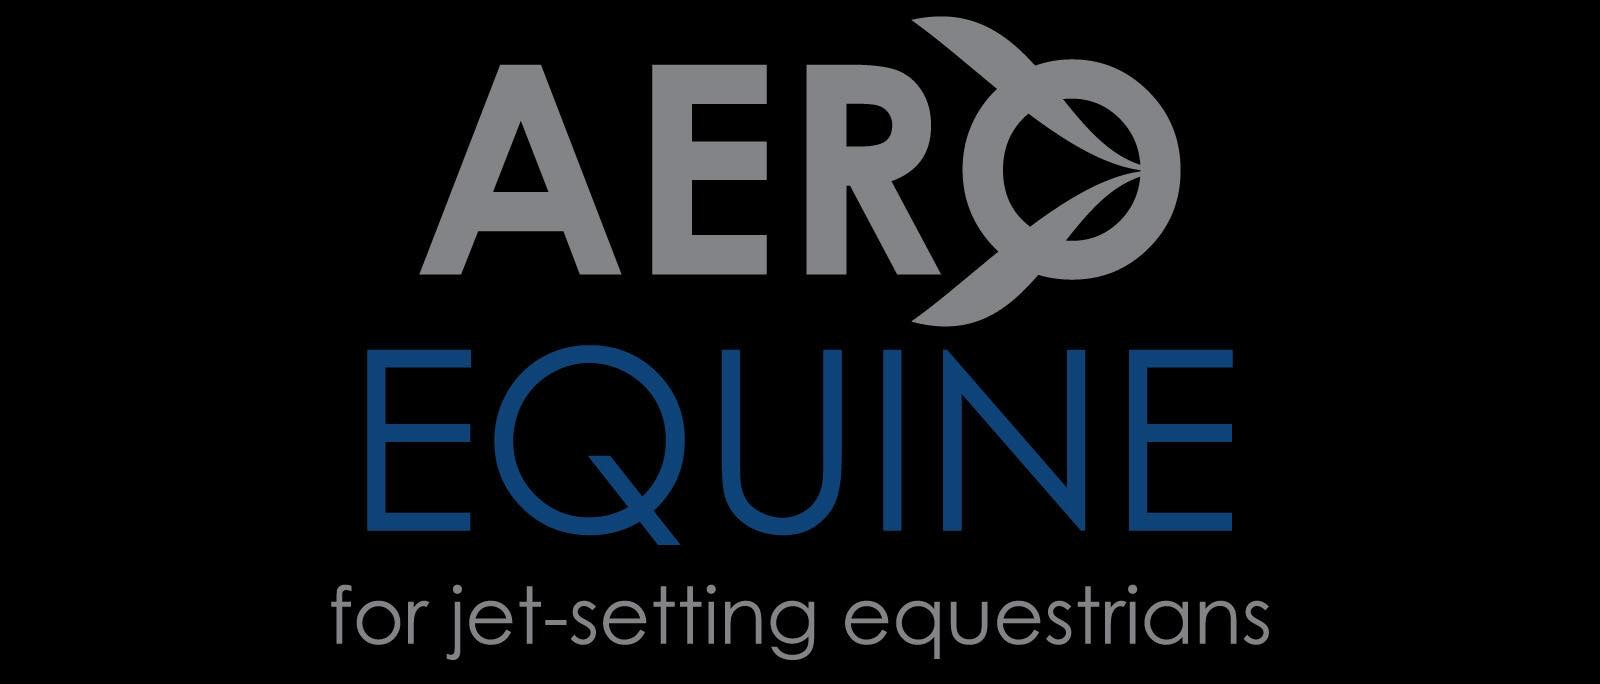 AeroEquine by Horse Glam